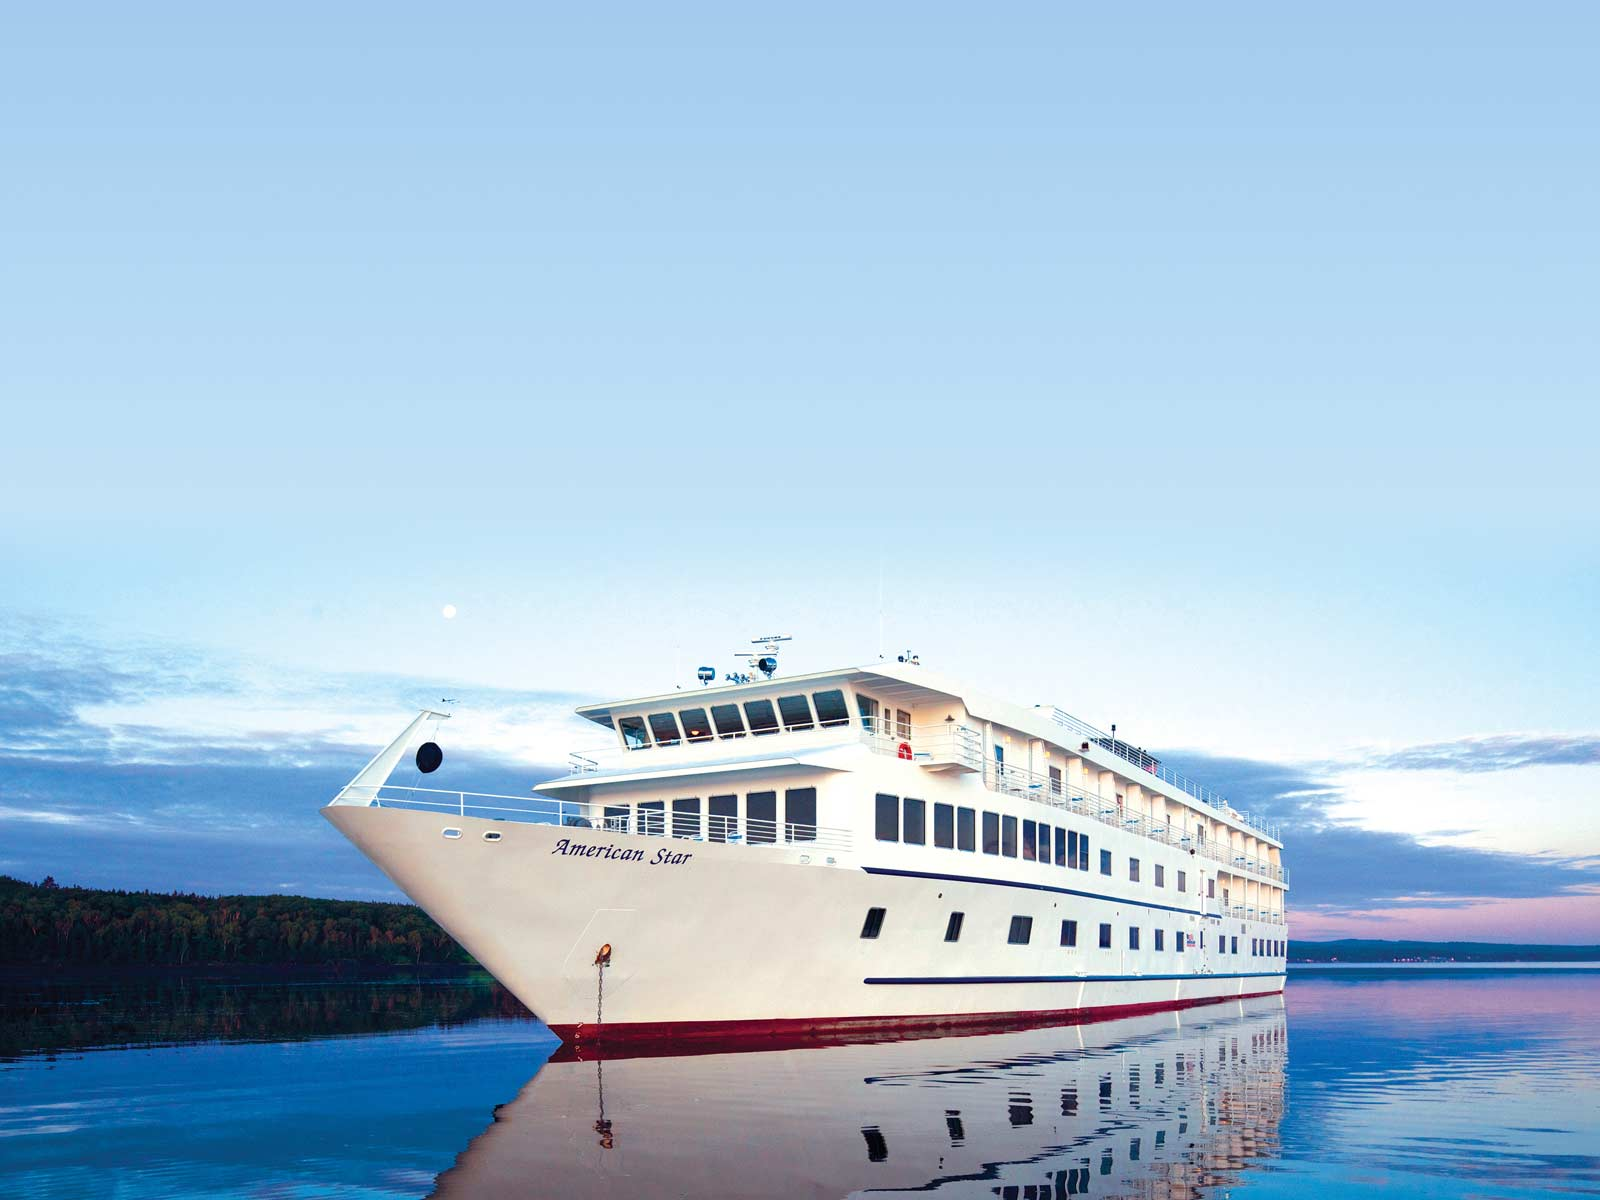 Of The Best River Cruises To Book Right Now Qantas Travel Insider - American star cruise ship